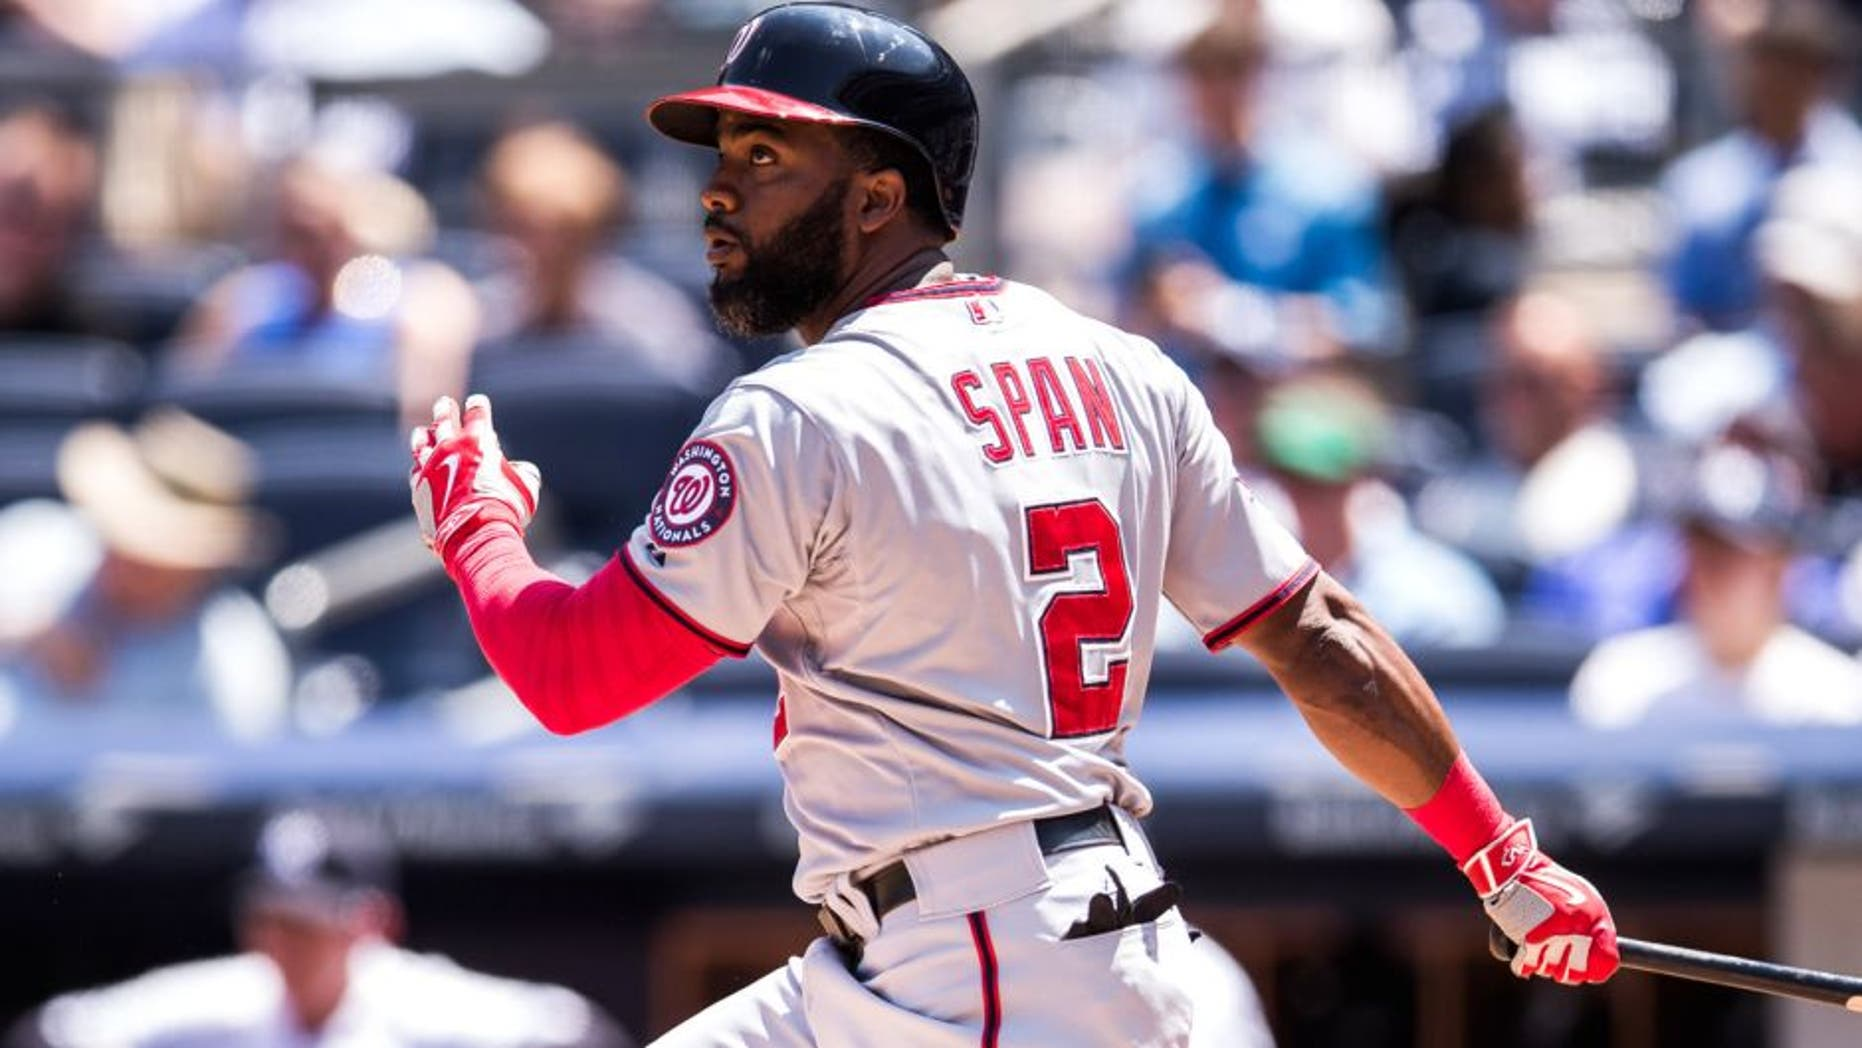 NEW YORK, NY - JUNE 10: Denard Span #2 of the Washington Nationals bats during the game against the New York Yankees at Yankee Stadium on June 10, 2015 in the Bronx borough of New York City. (Photo by Rob Tringali/SportsChrome/Getty Images)